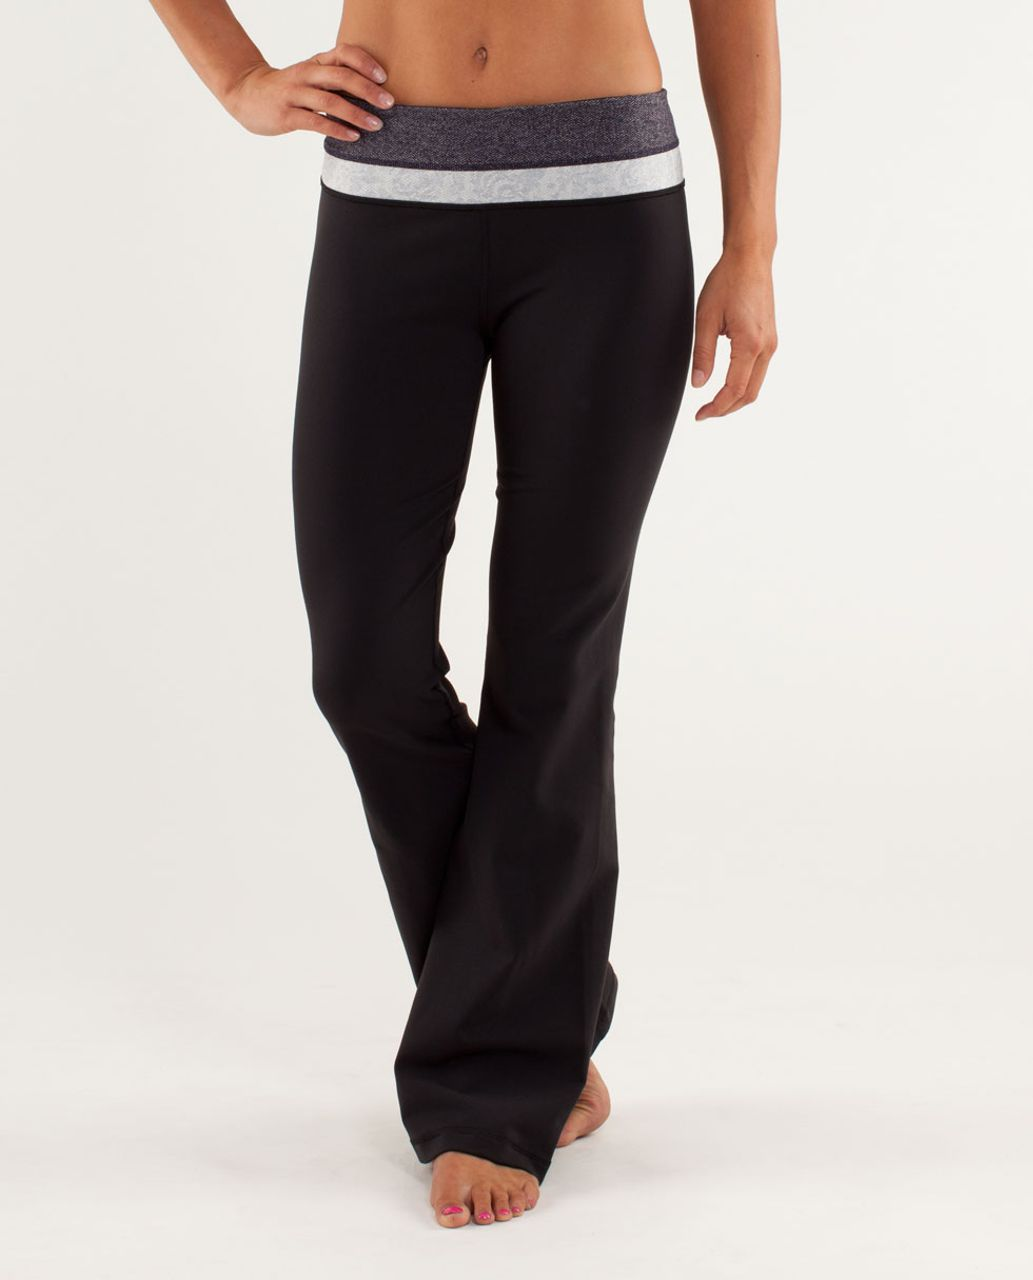 Lululemon Groove Pant *Slim (Tall) - Black Swan / Herringbone Black Swan / Rose Herringbone Polar Cream